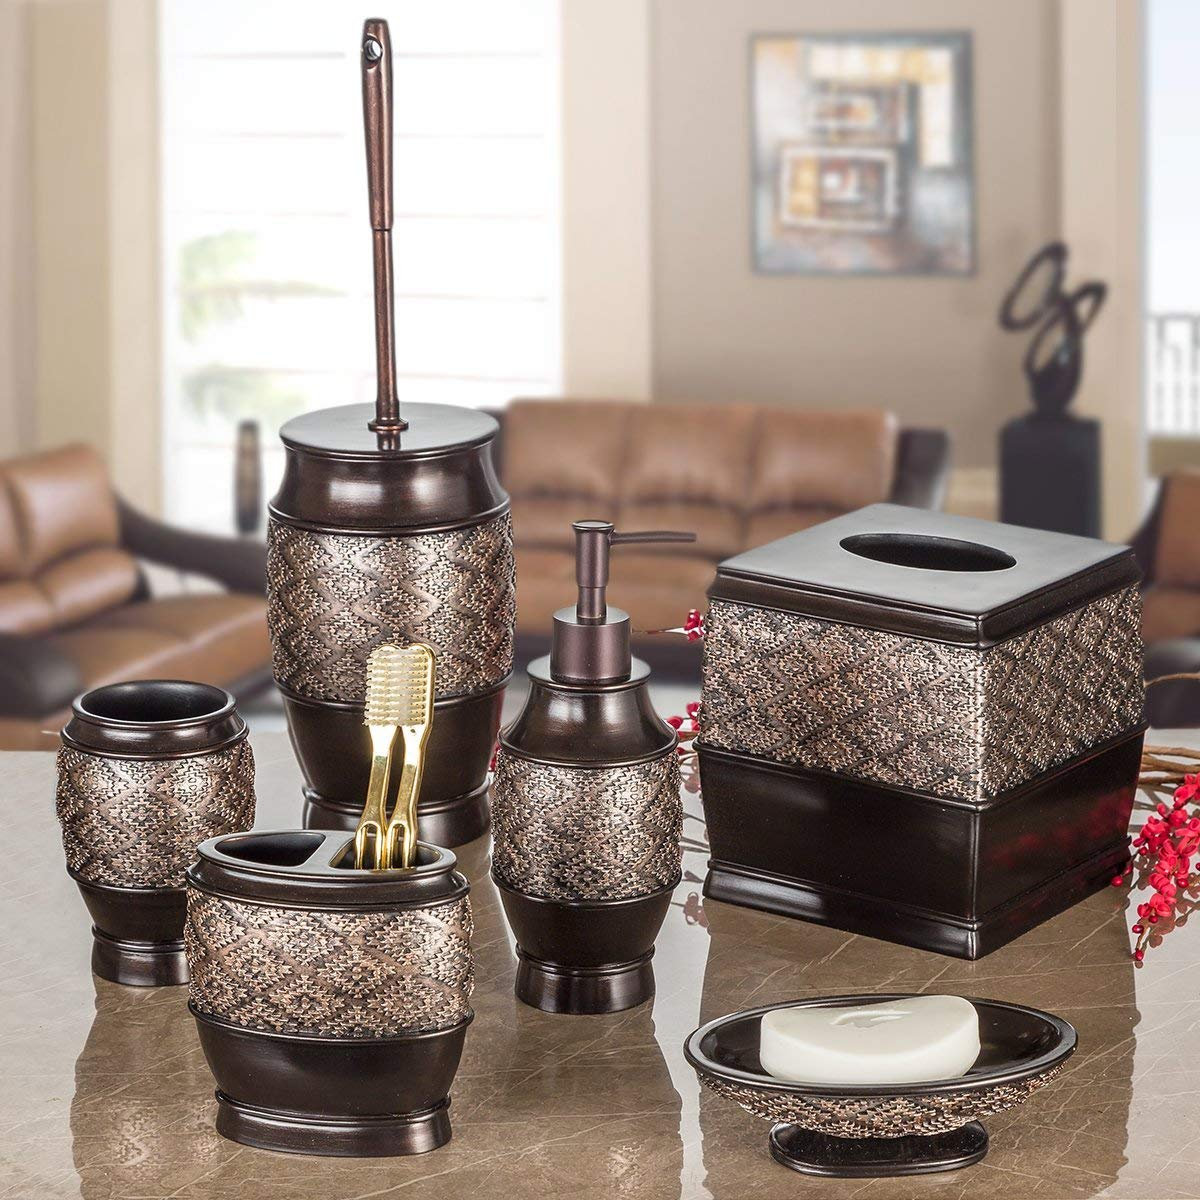 Dublin 6-Piece Bathroom Accessories Set, Includes Decorative Countertop Soap Dispenser, Soap Dish, Tumbler, Toothbrush Holder, Tissue Box Cover and Toilet Bowl Brush (Brown) by Creative Scents (Image #2)